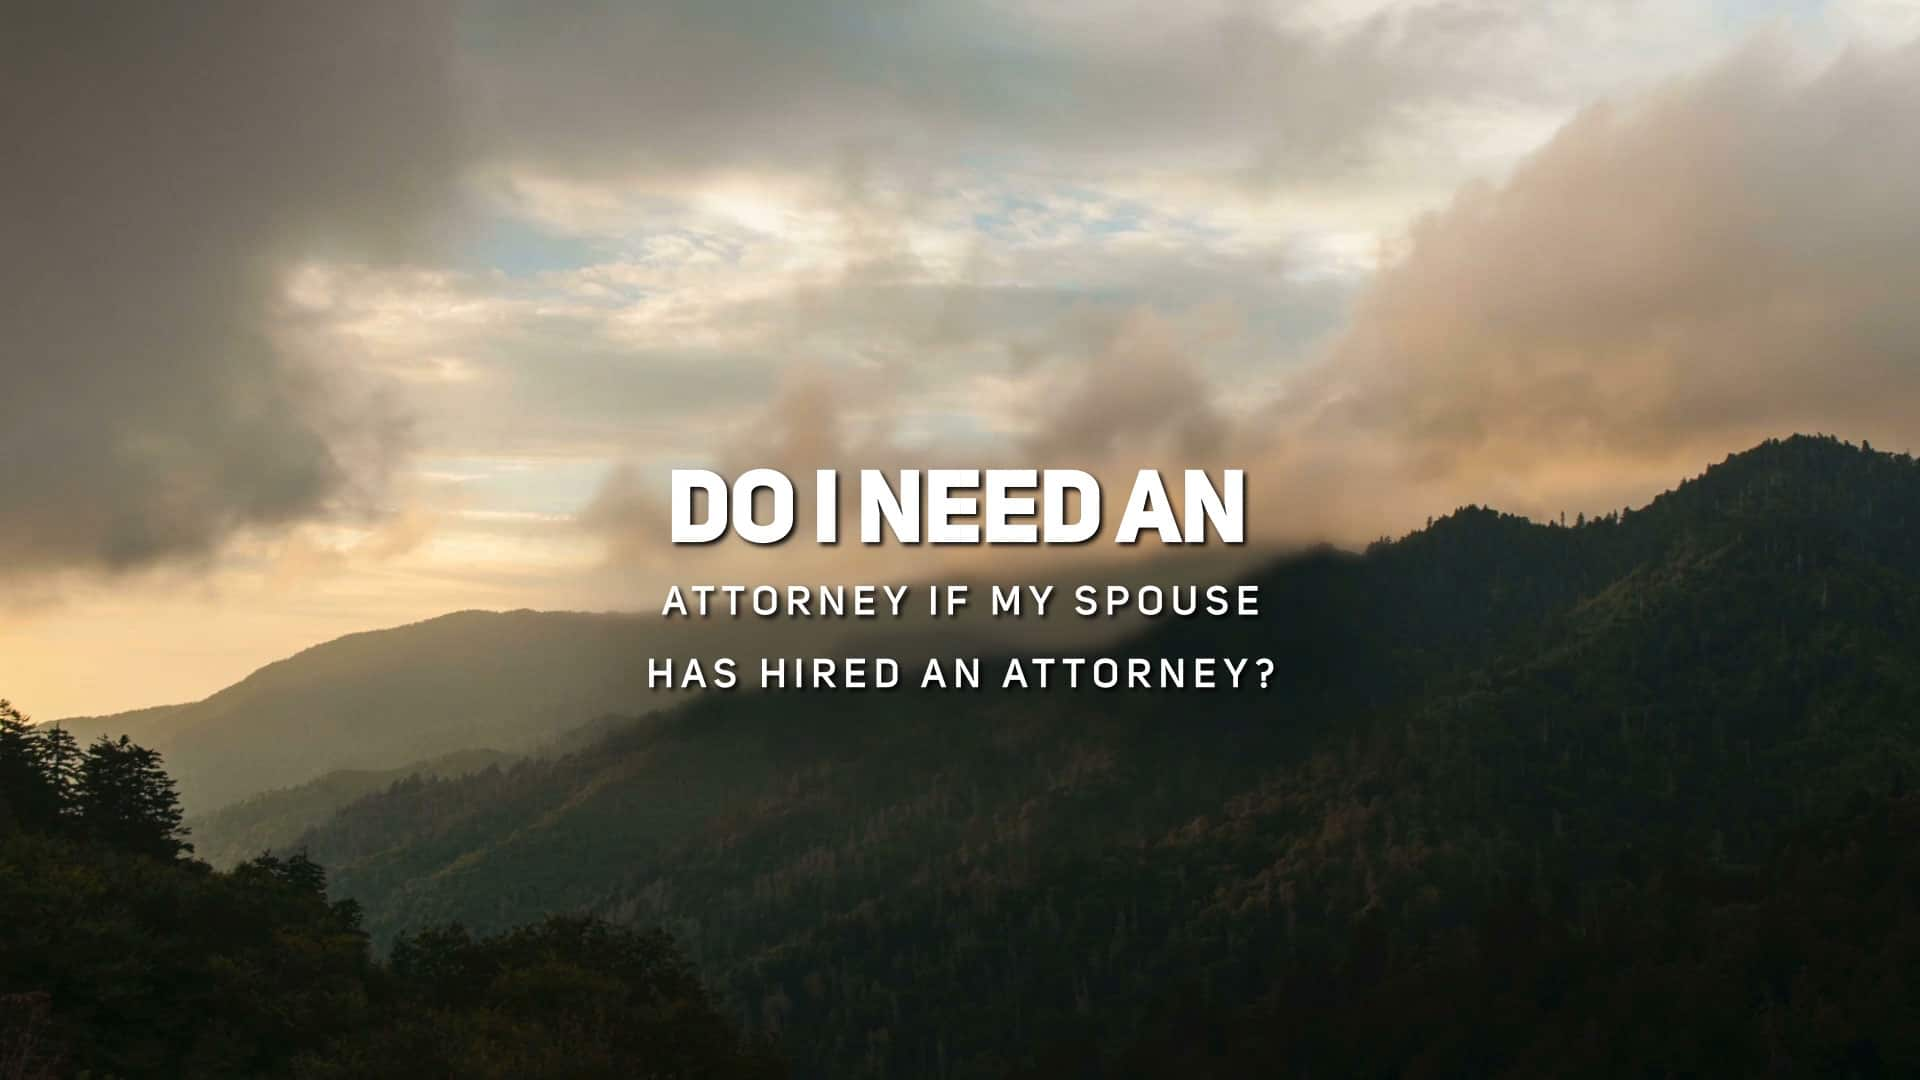 Do I Need an Attorney if My Spouse Has Hired an Attorney